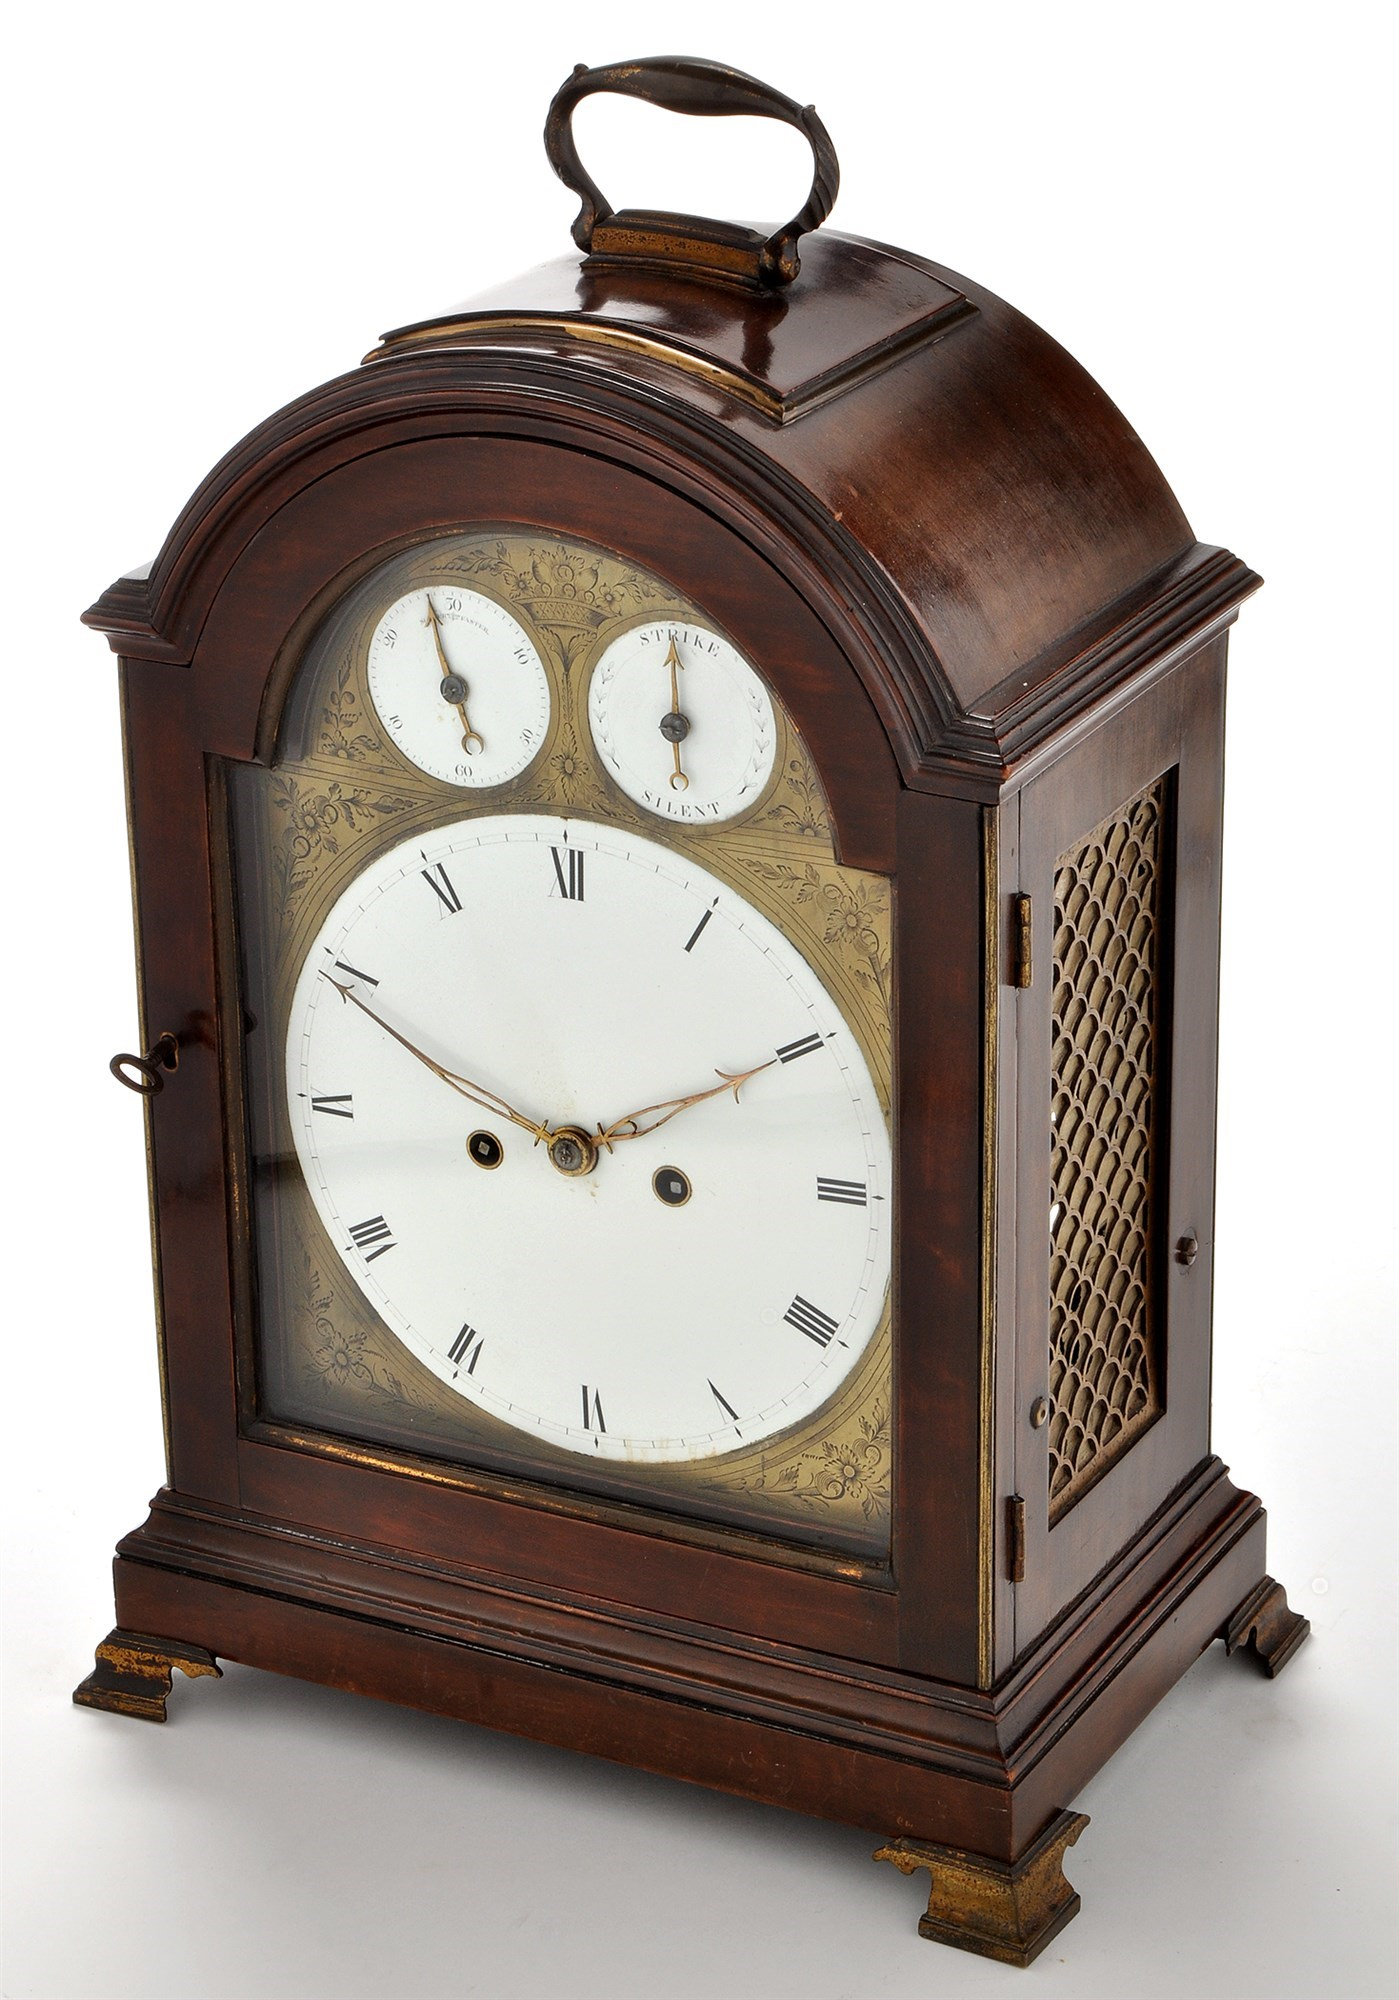 A George III style mahogany cased mantel clock,